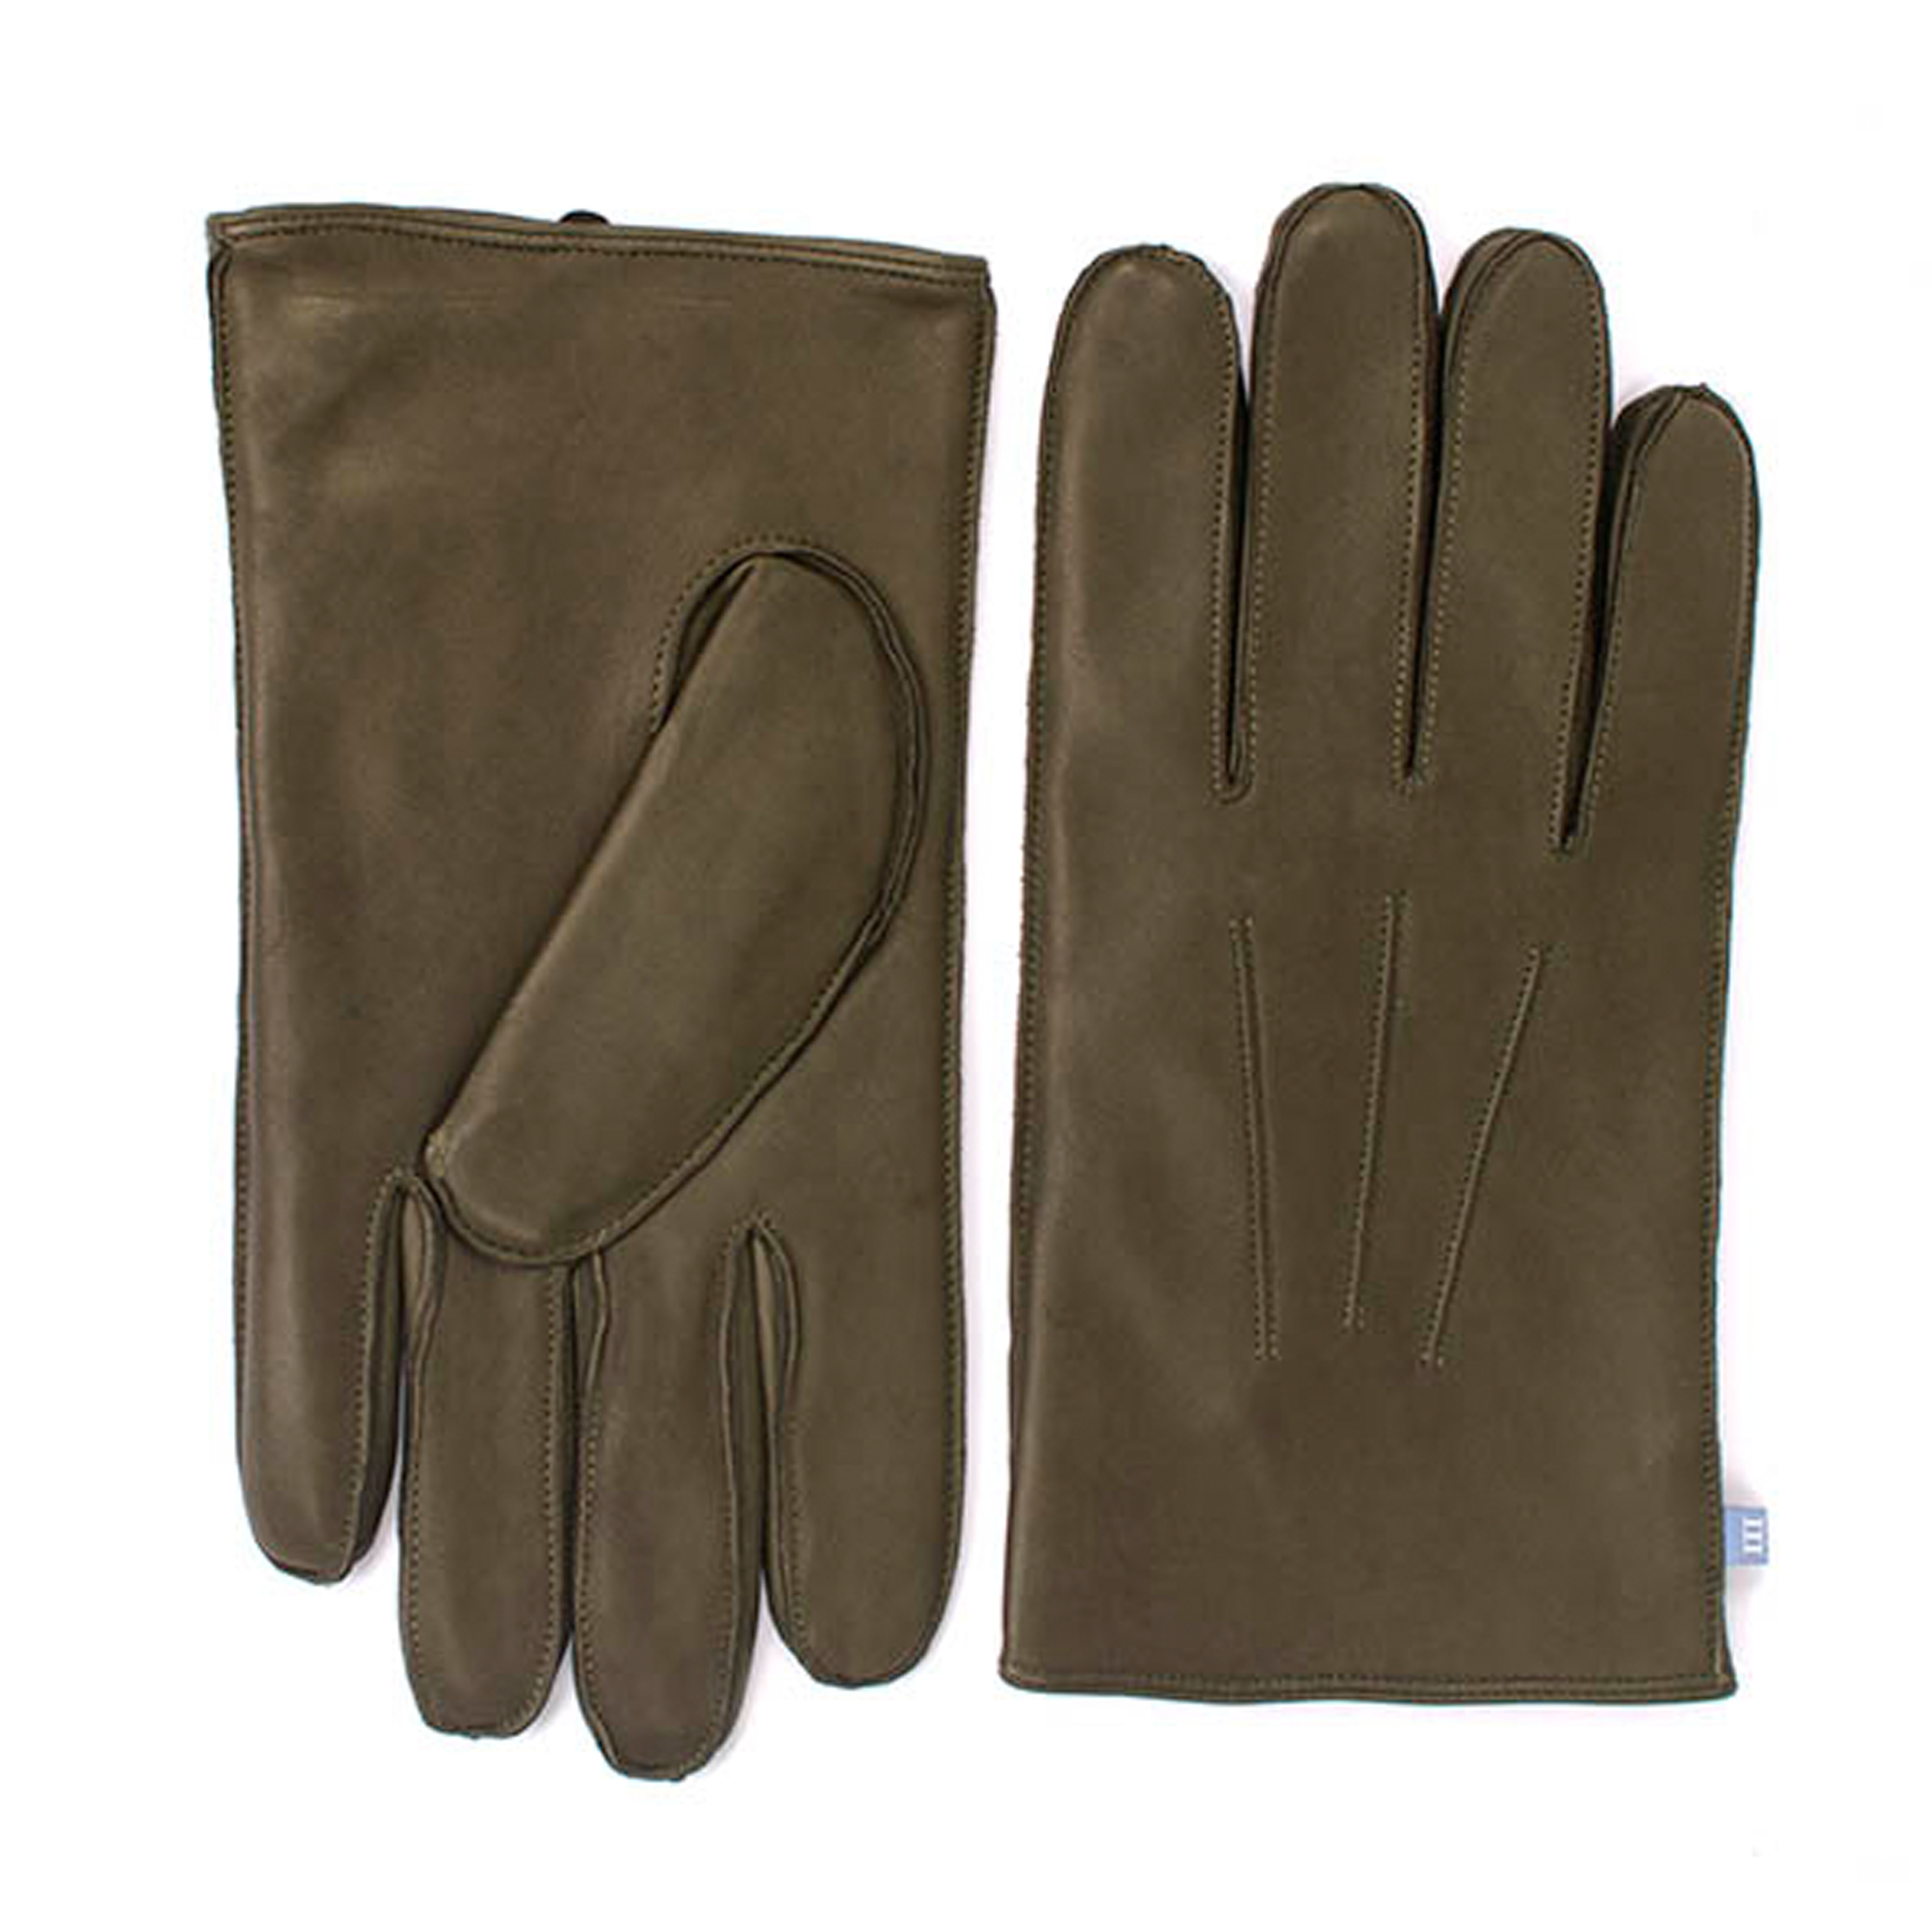 Army green sheep leather gloves